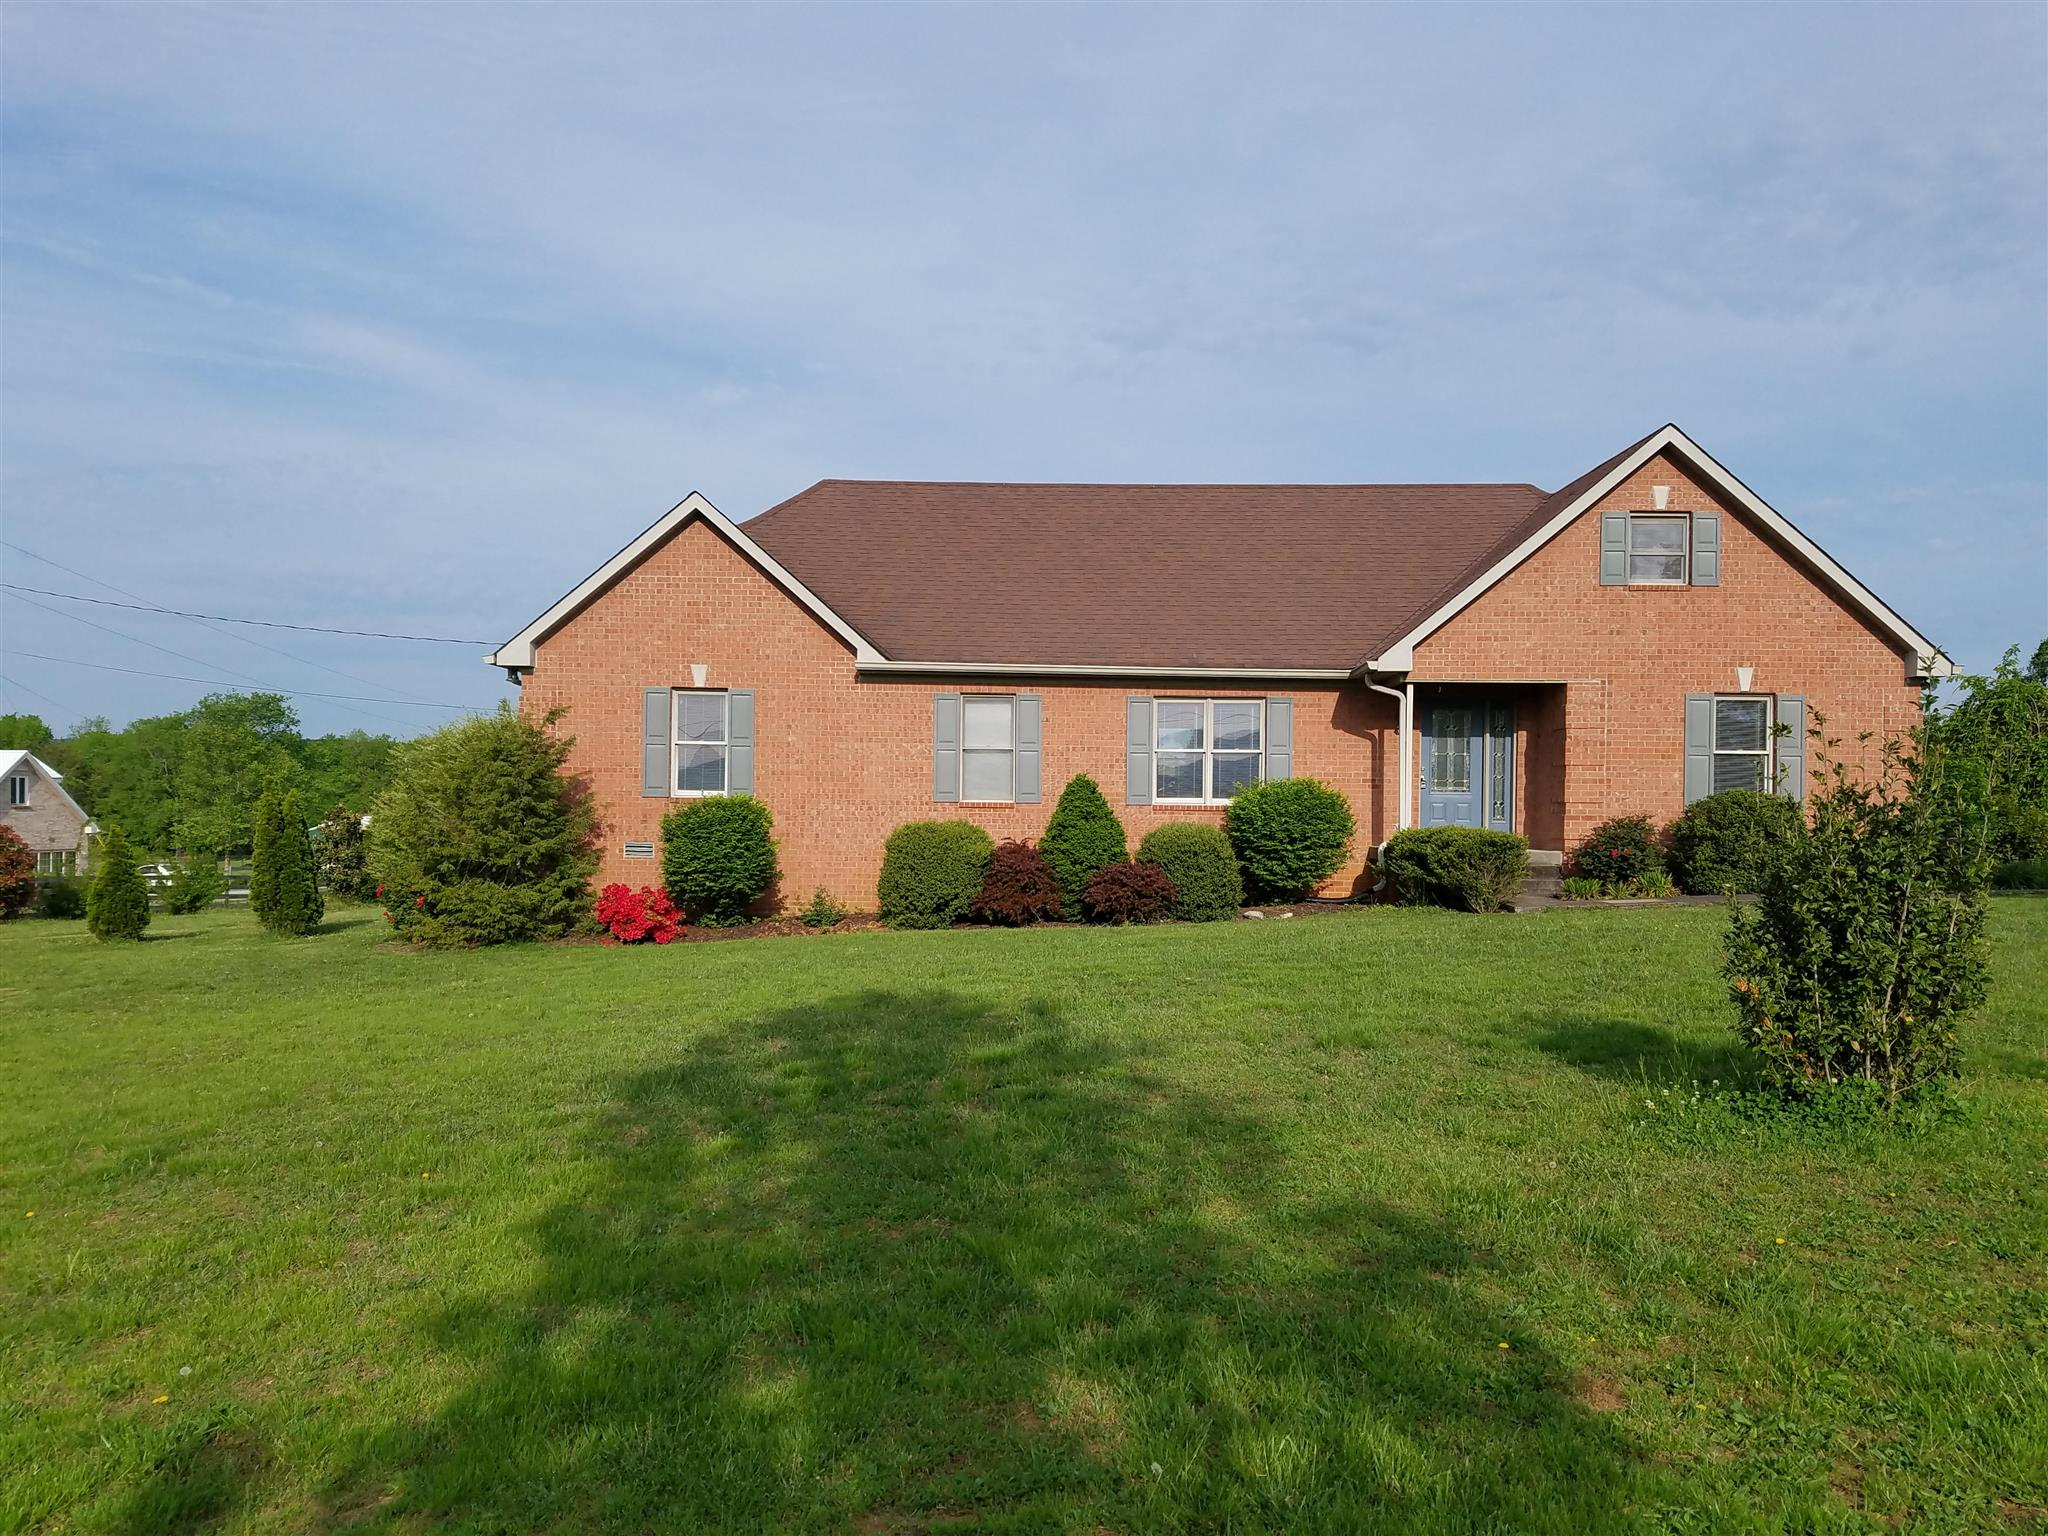 88 Flat Rock Rd, Lebanon in Smith County County, TN 37090 Home for Sale